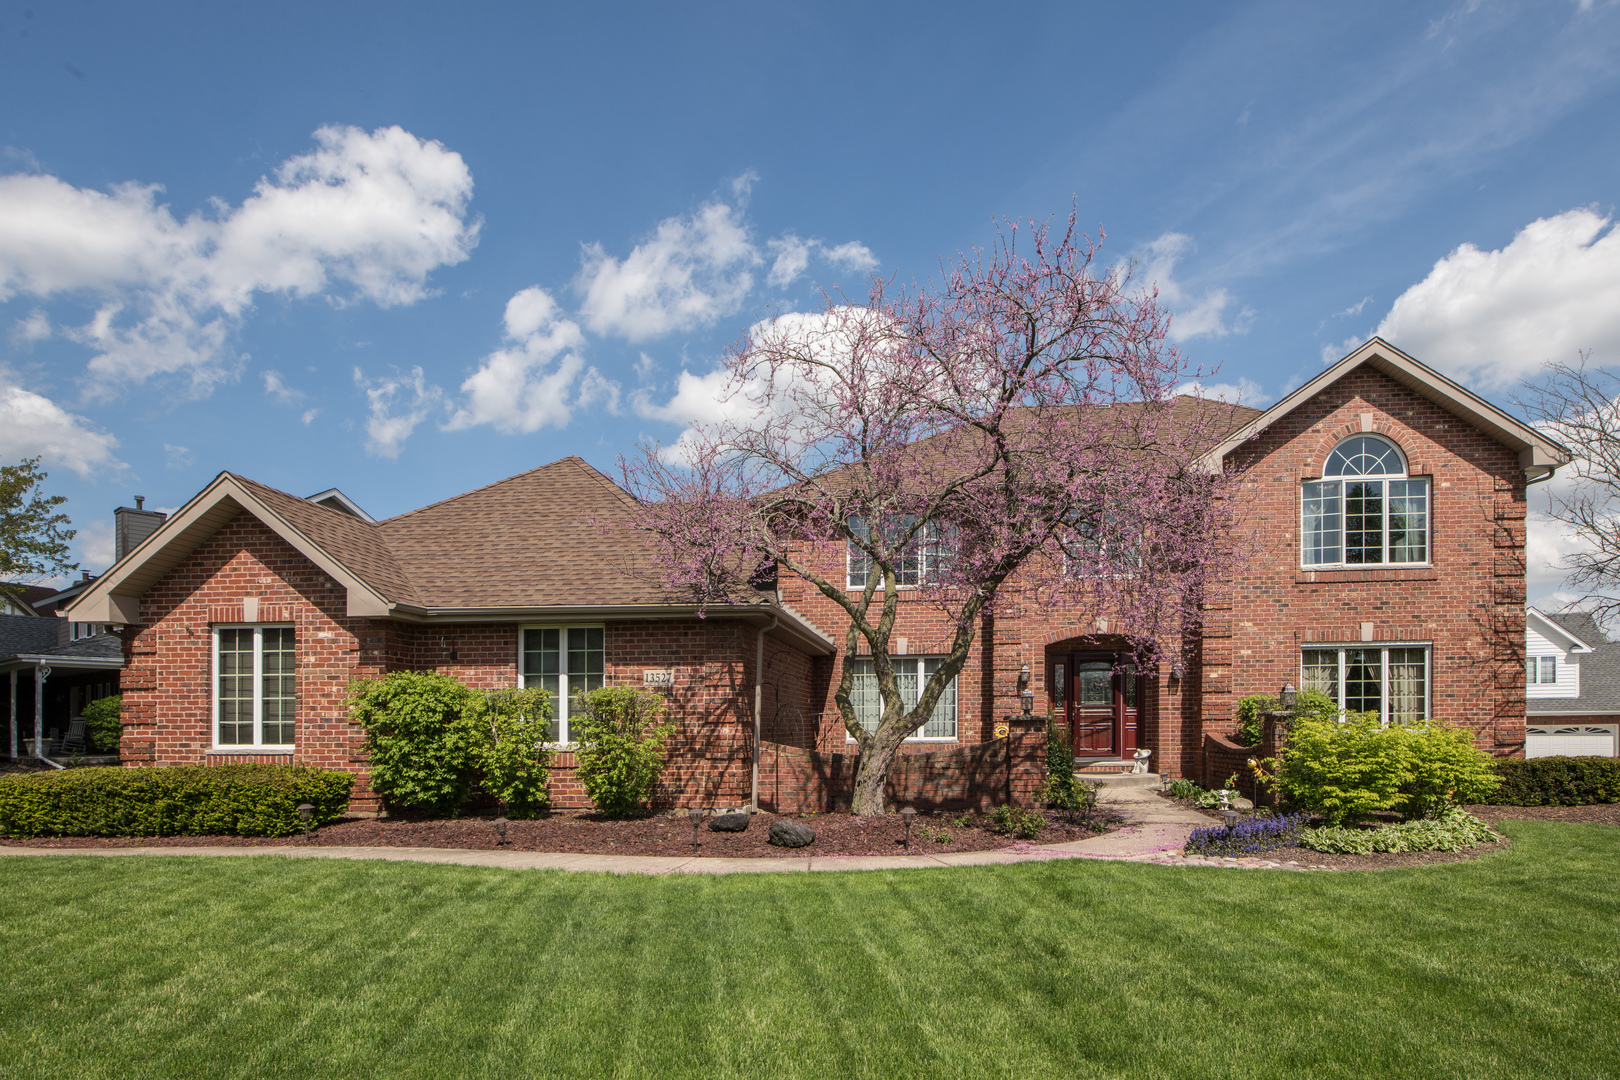 13527 South Potawatomi Trail, Homer Glen in Will County, IL 60491 Home for Sale